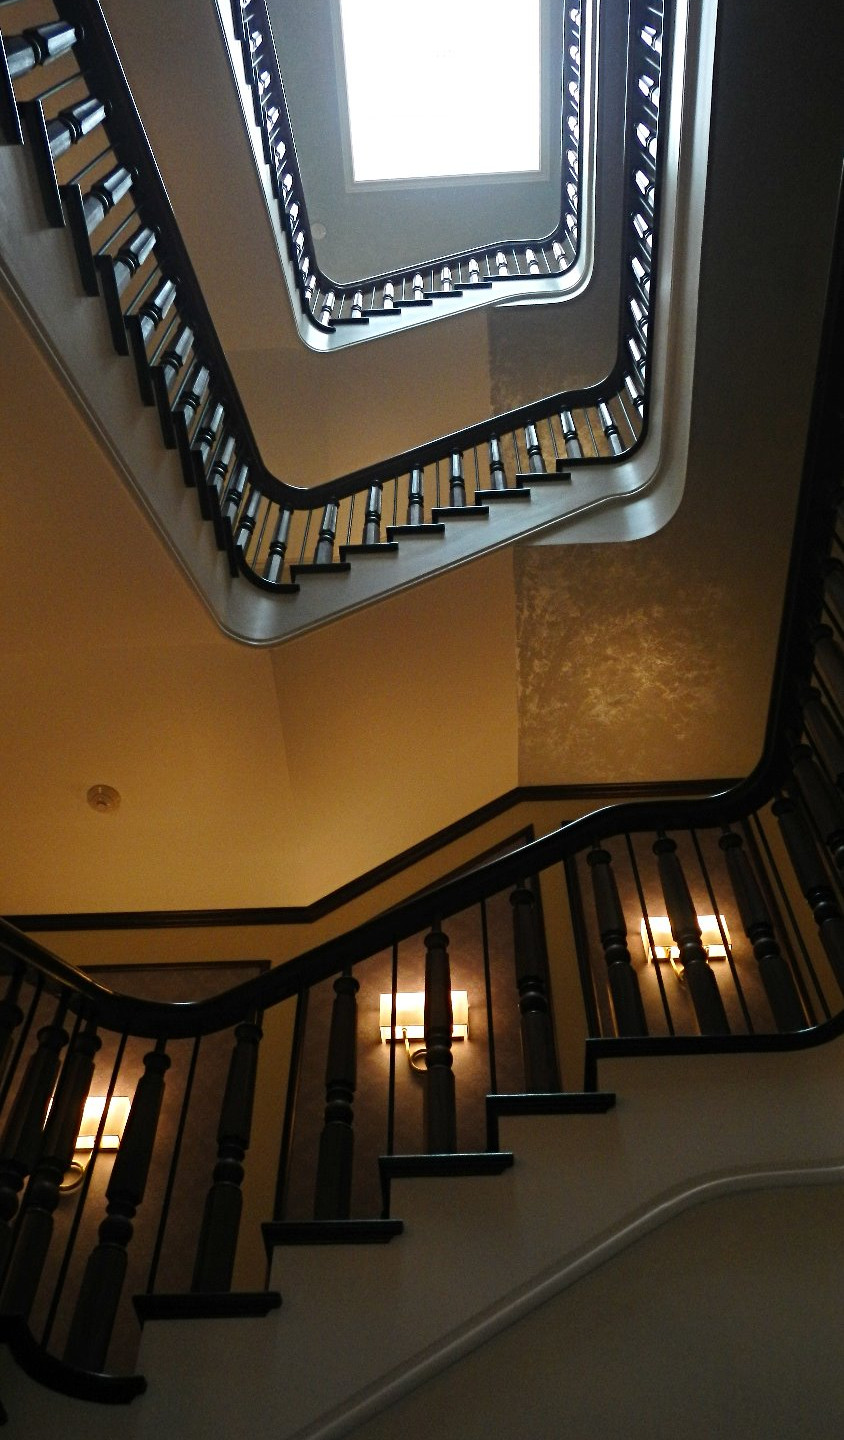 The original Adelphi Hotel banister was used for the remodelled staircase